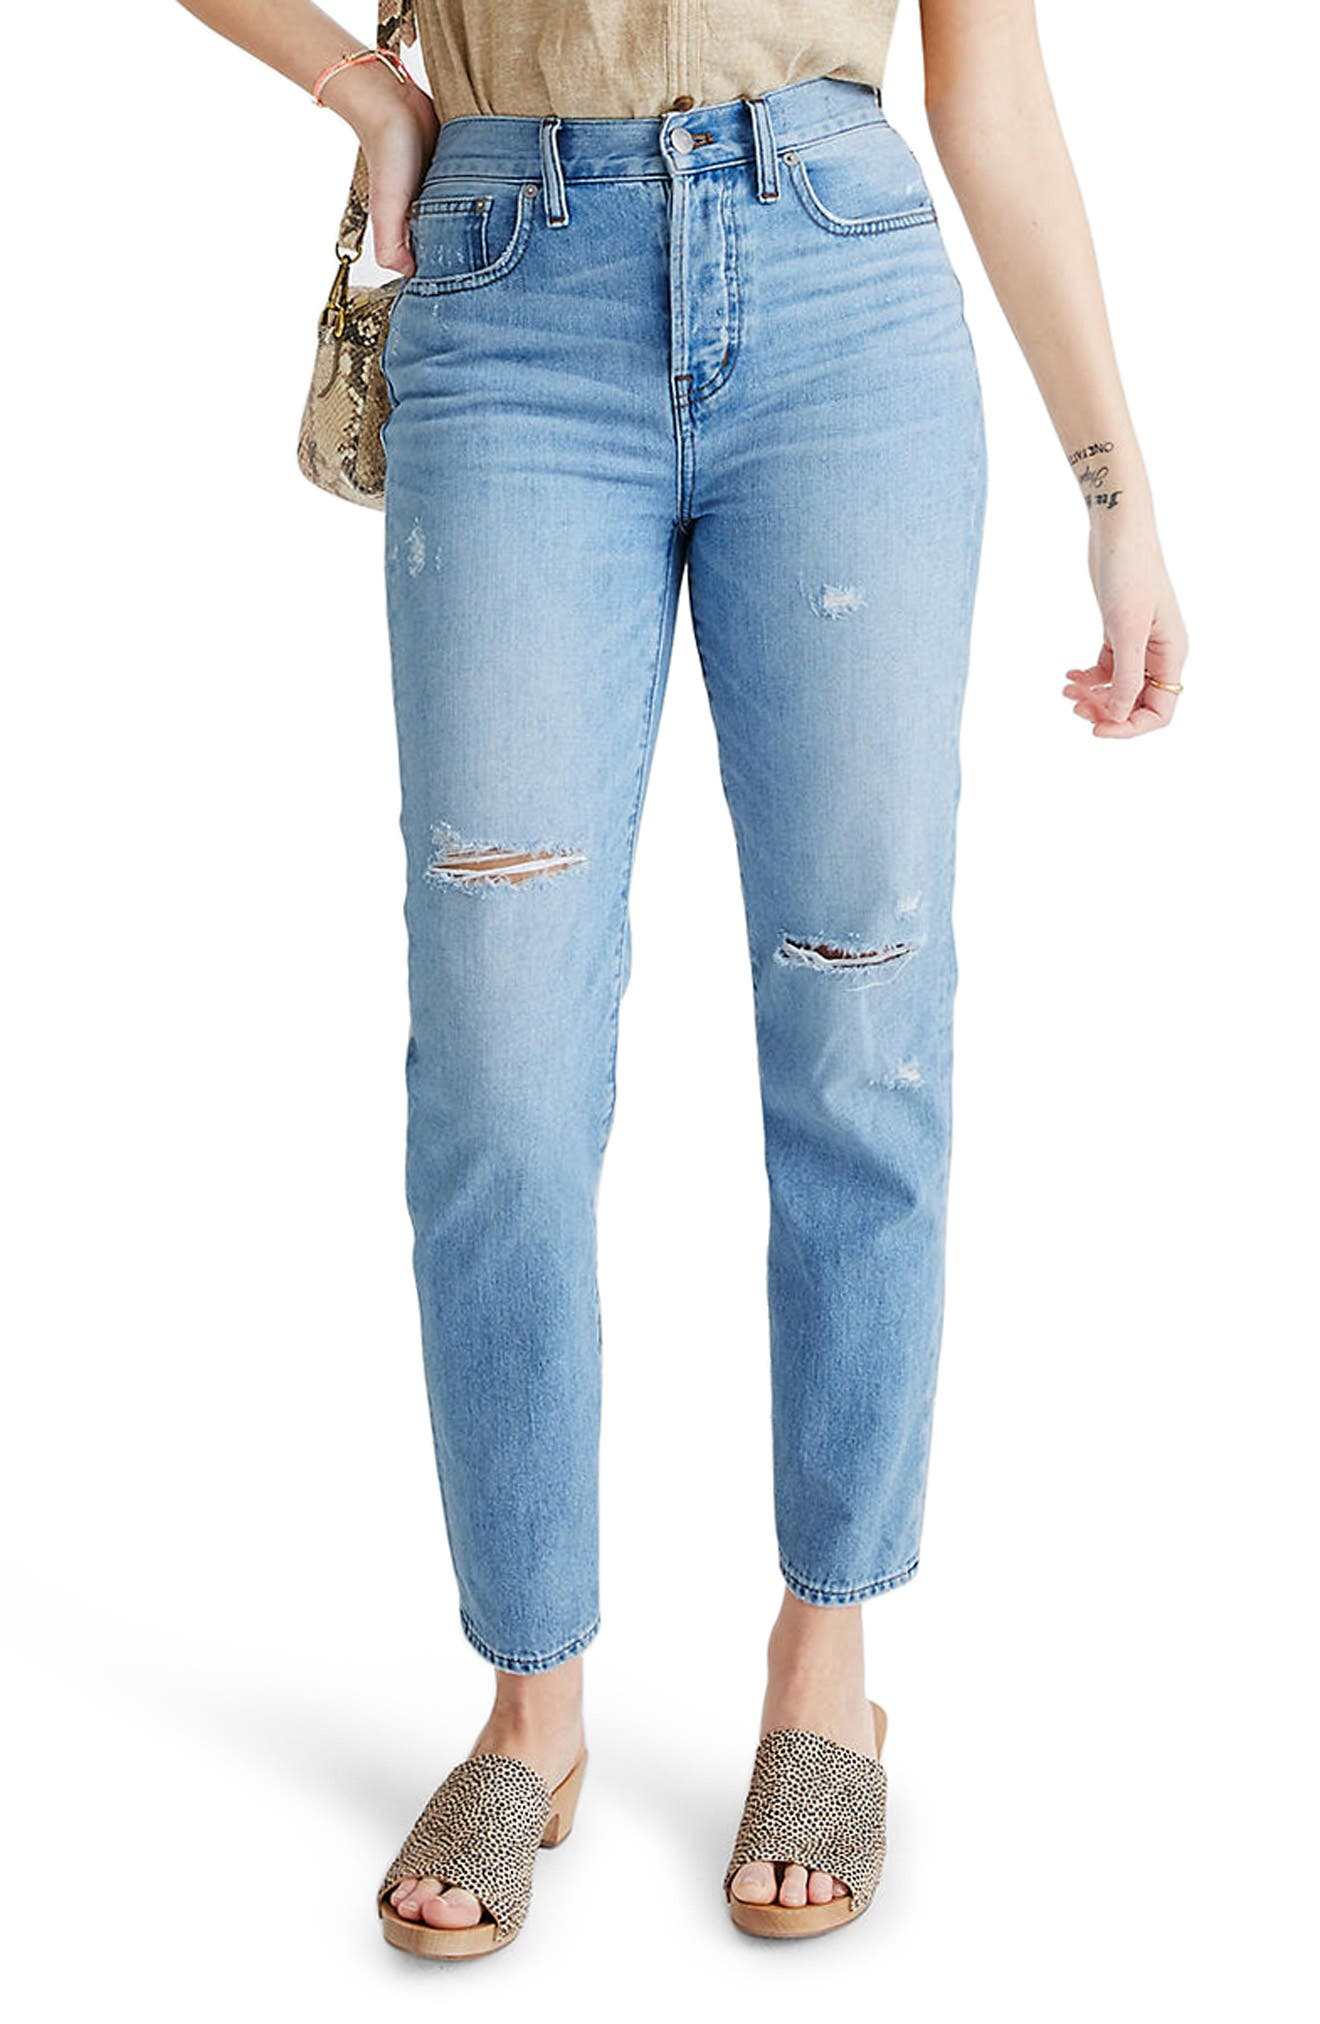 With the waist-accentuating high waist, tapered legs and faded nonstretch denim, these are \\\'mom jeans\\\' . if your mom was a \\\'90s supermodel. Style Name: Madewell The Perfect Vintage Jean (Duncannon). Style Number: 6064790. Available in stores.